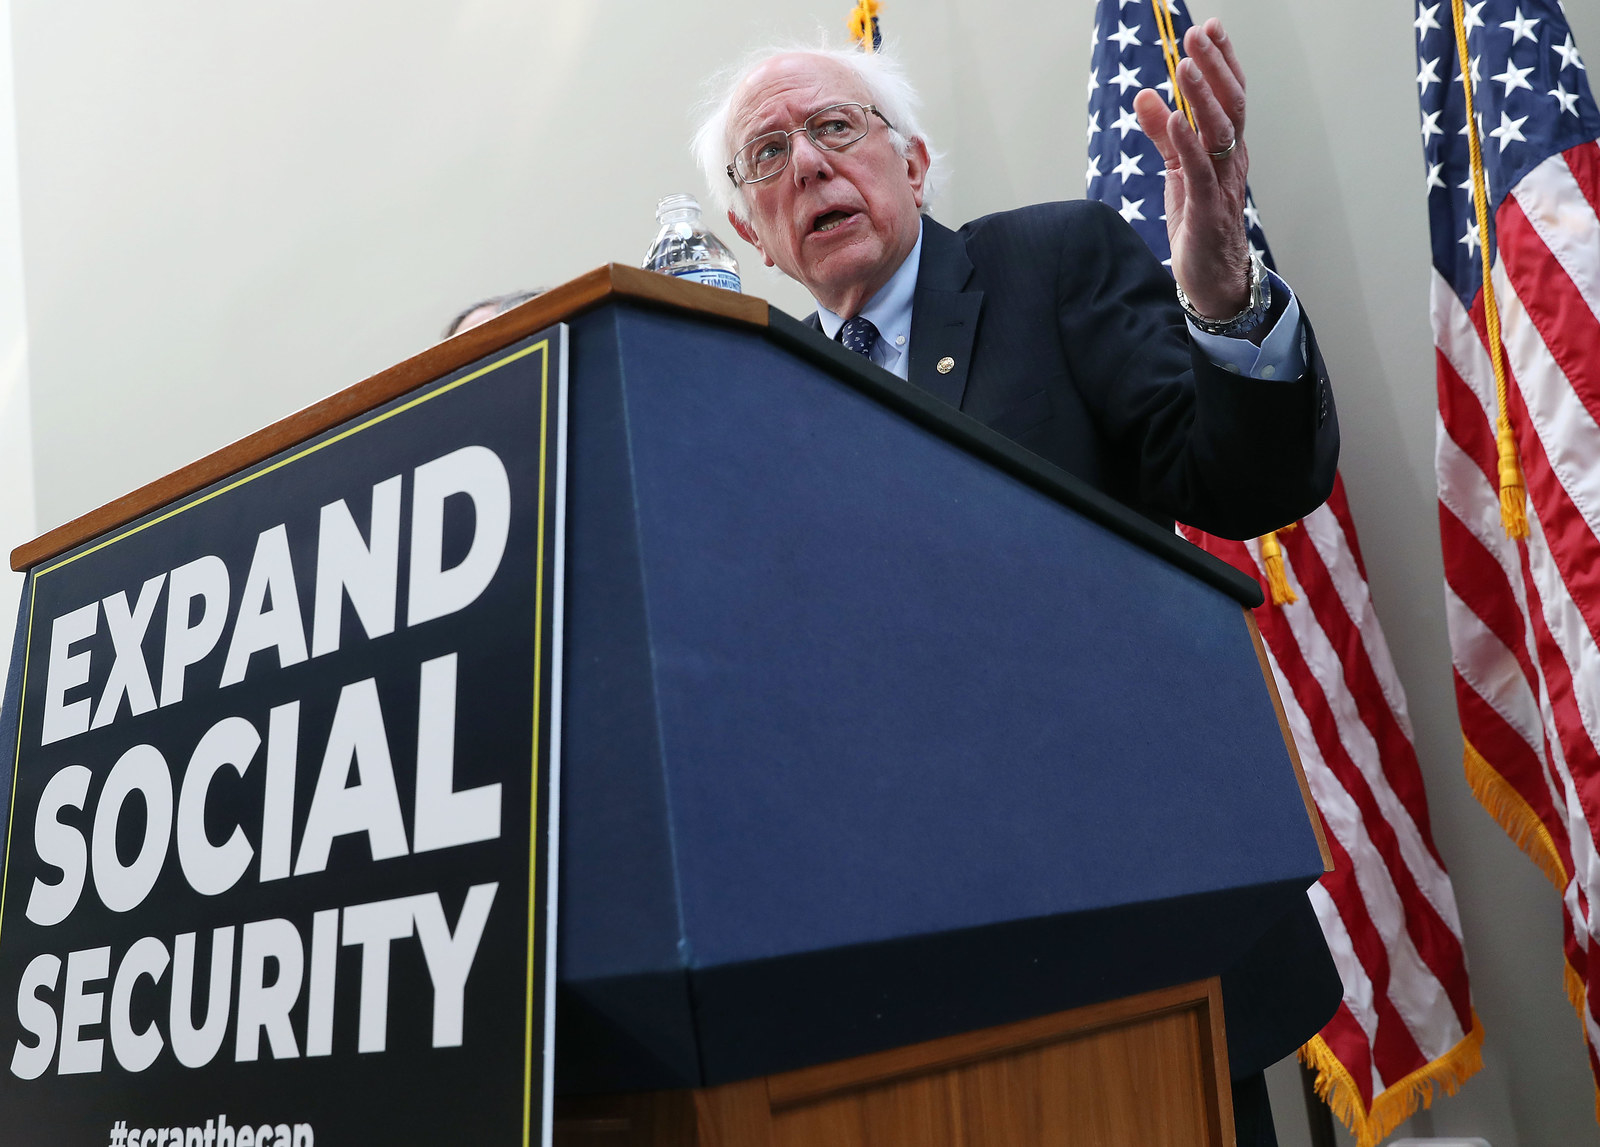 Democratic Socialists Of America Is Preparing To Potentially Launch A National Campaign To Back Bernie Sanders' 2020 Campaign